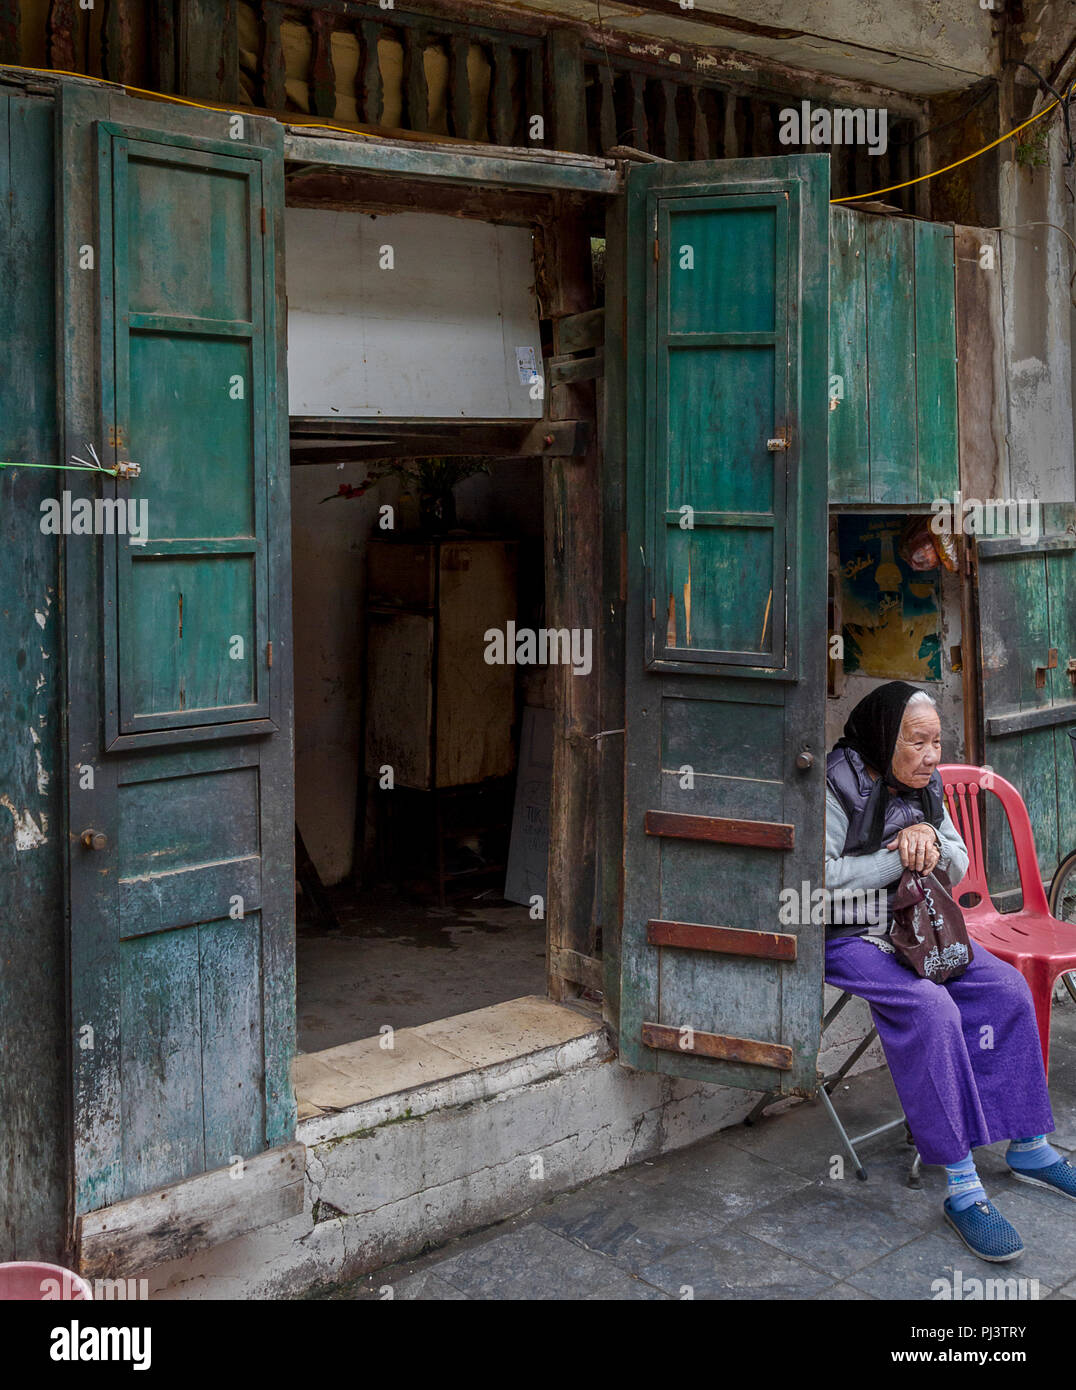 An old Asian lady sitting to the side of double green doors in Hanoi. Editorial March 26, 2017 Old Quarter Hanoi, Vietnam - Stock Image